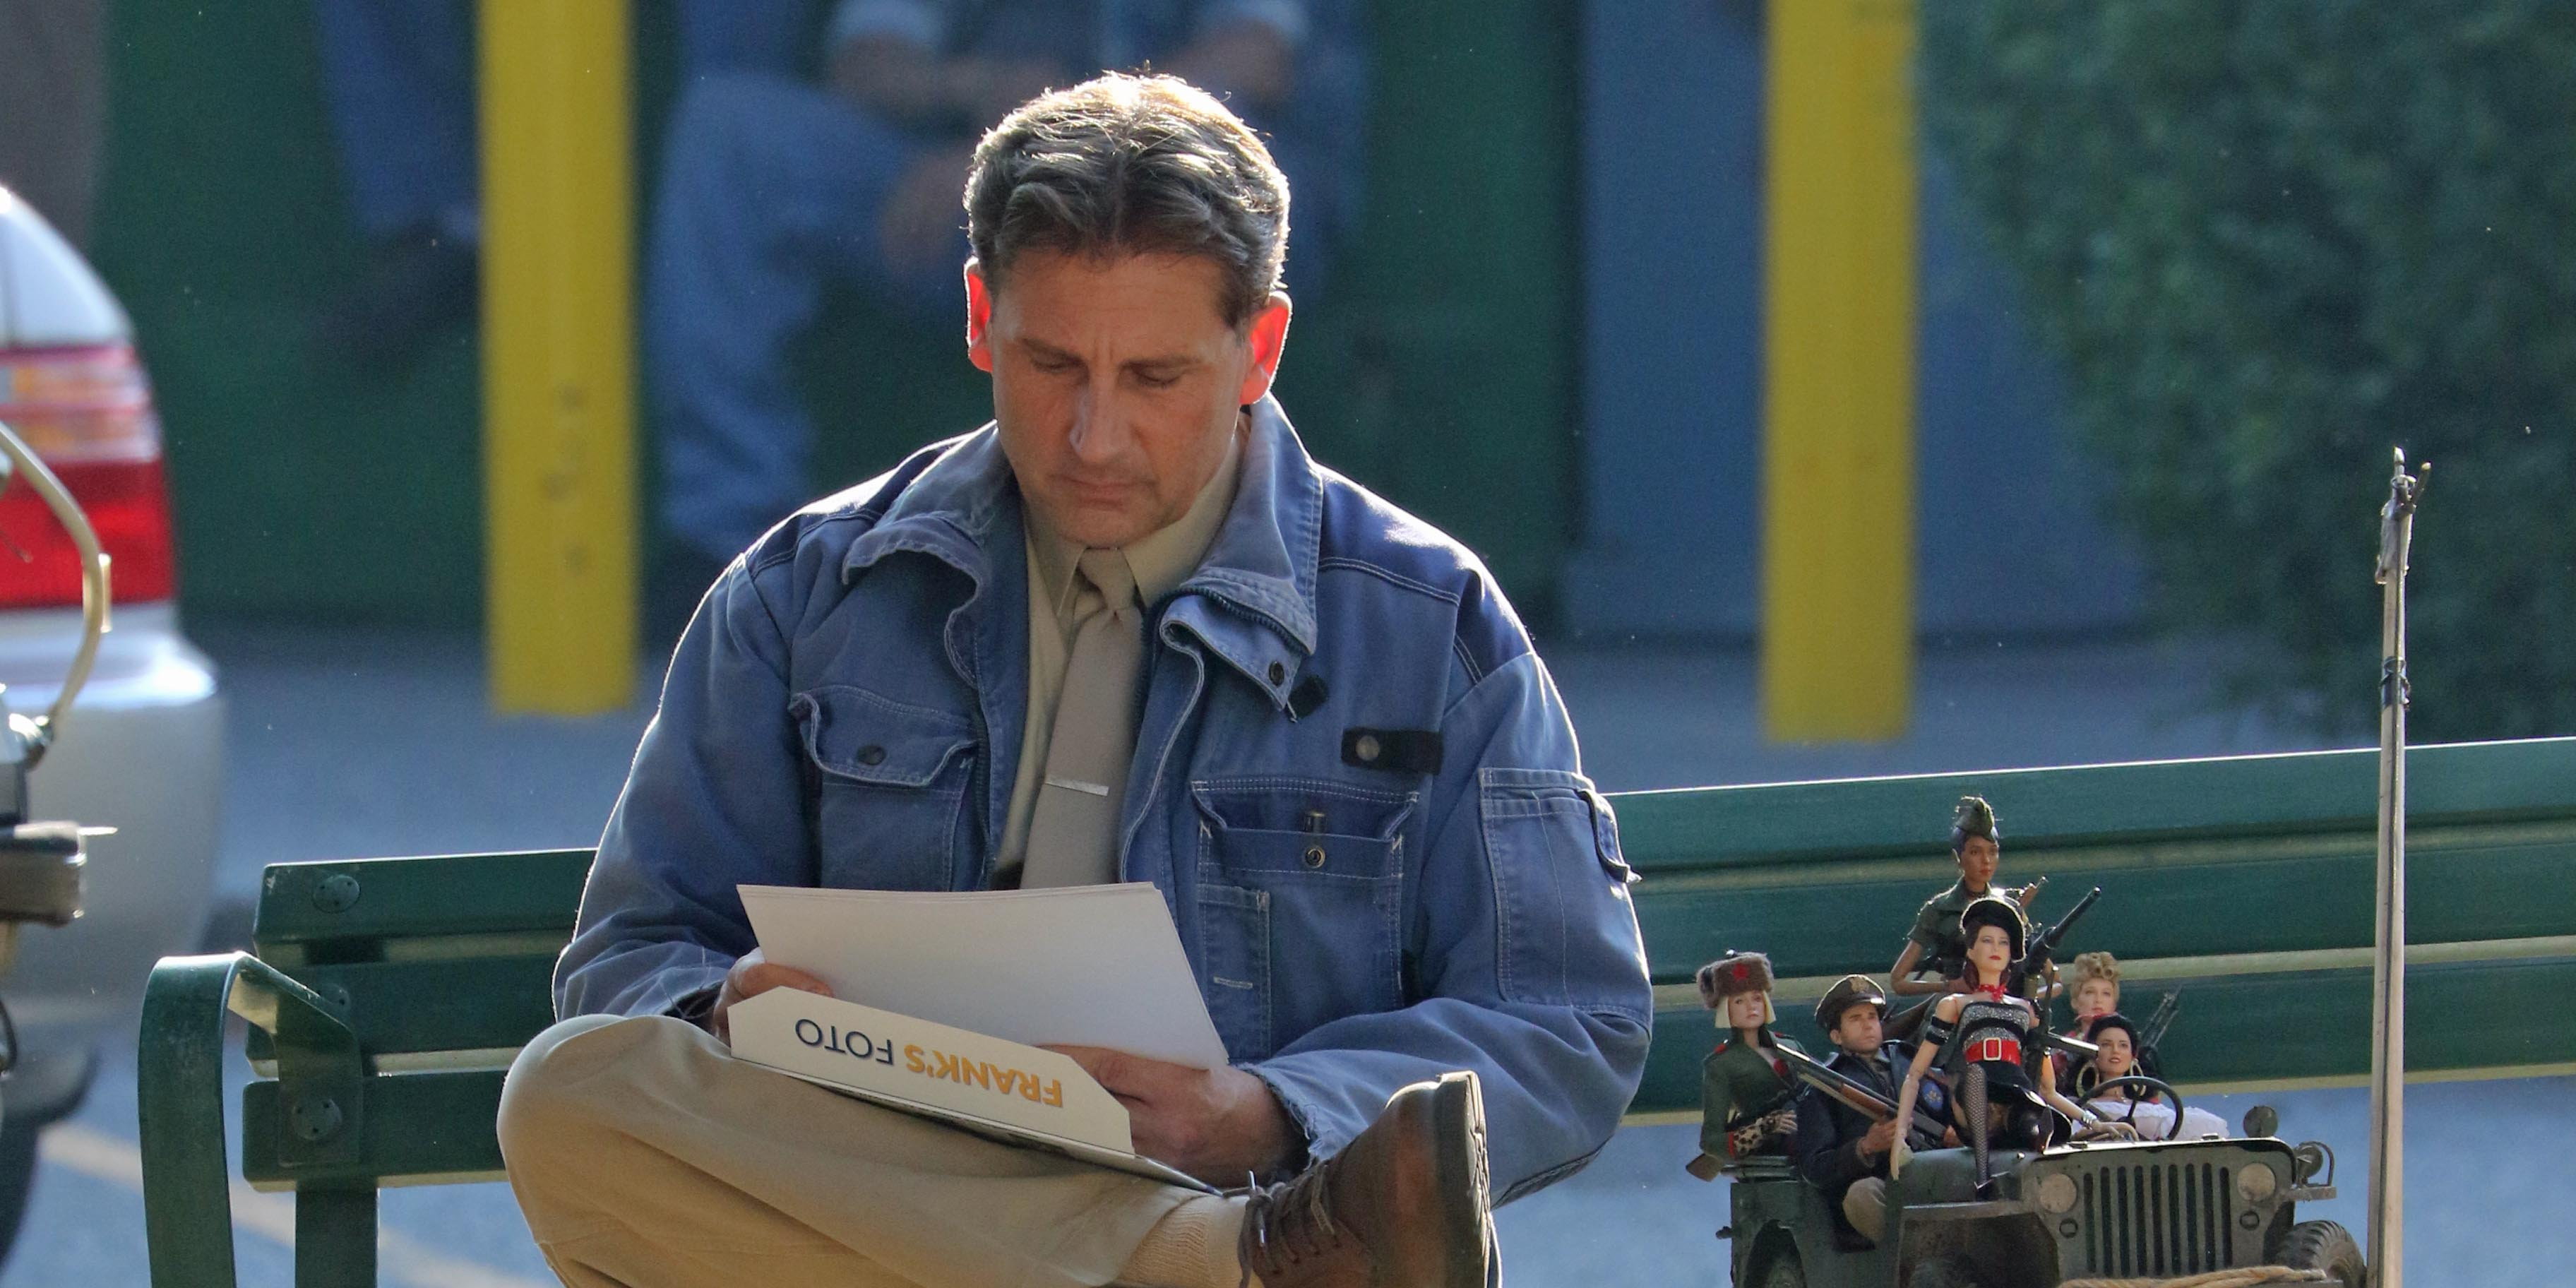 Steve Carell spotted filming in Vancouver (PHOTOS)